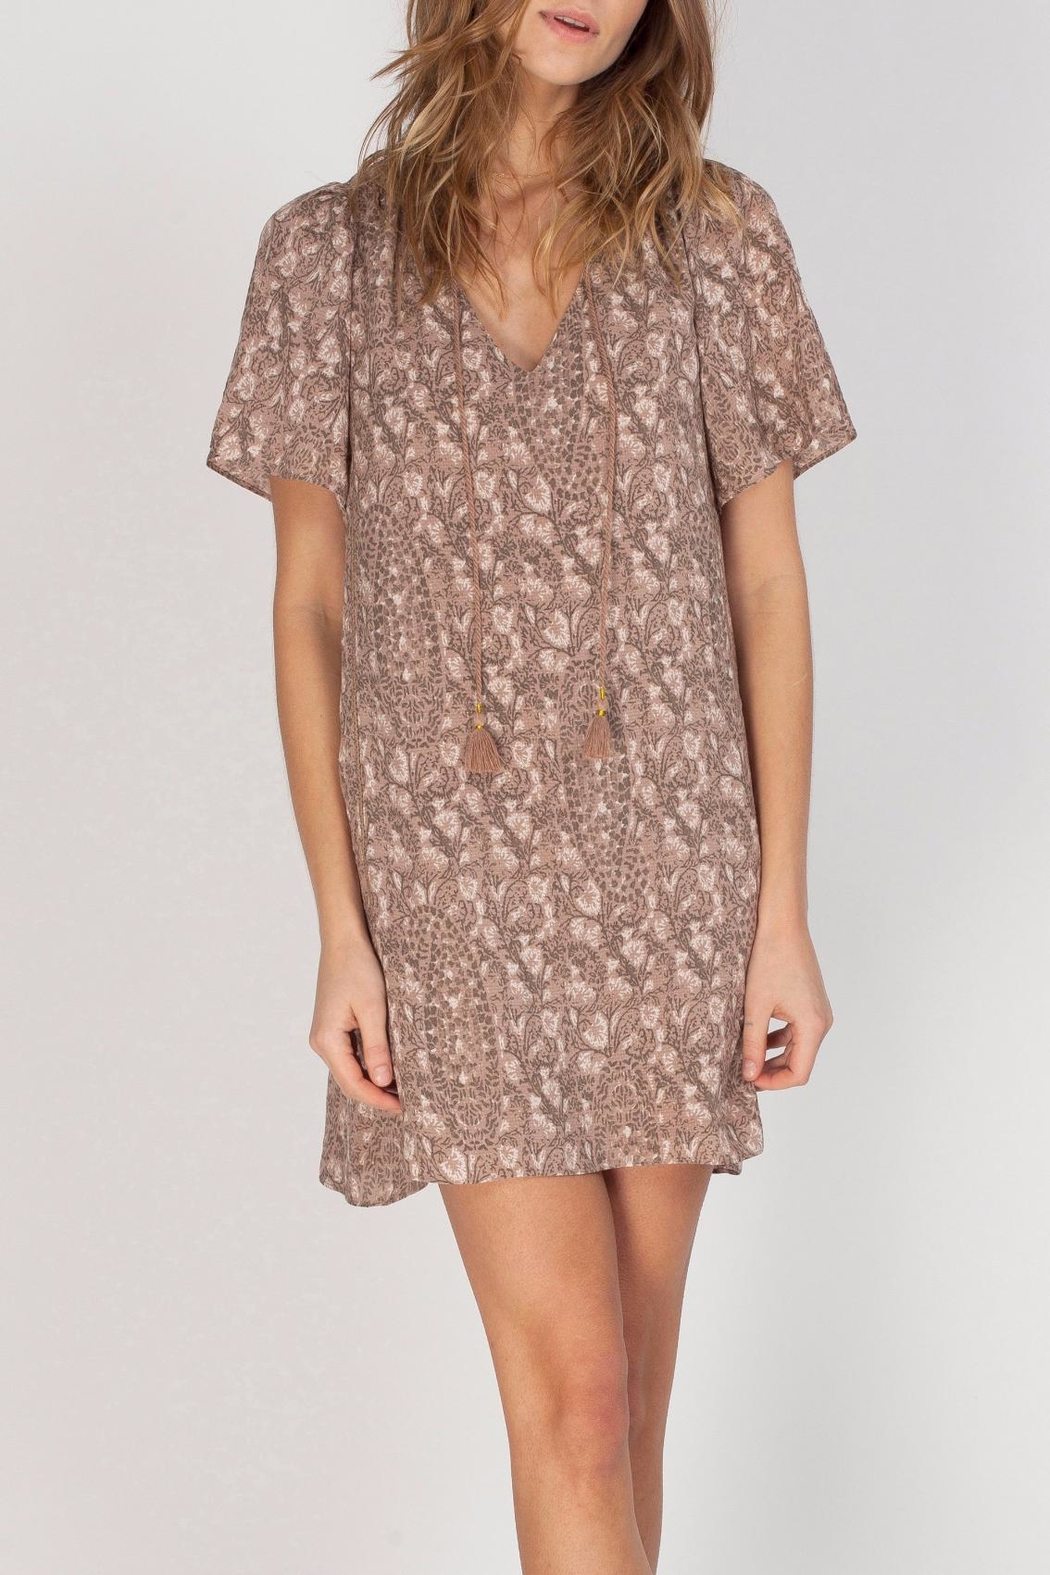 Gentle Fawn V-Neck Printed Dress - Main Image